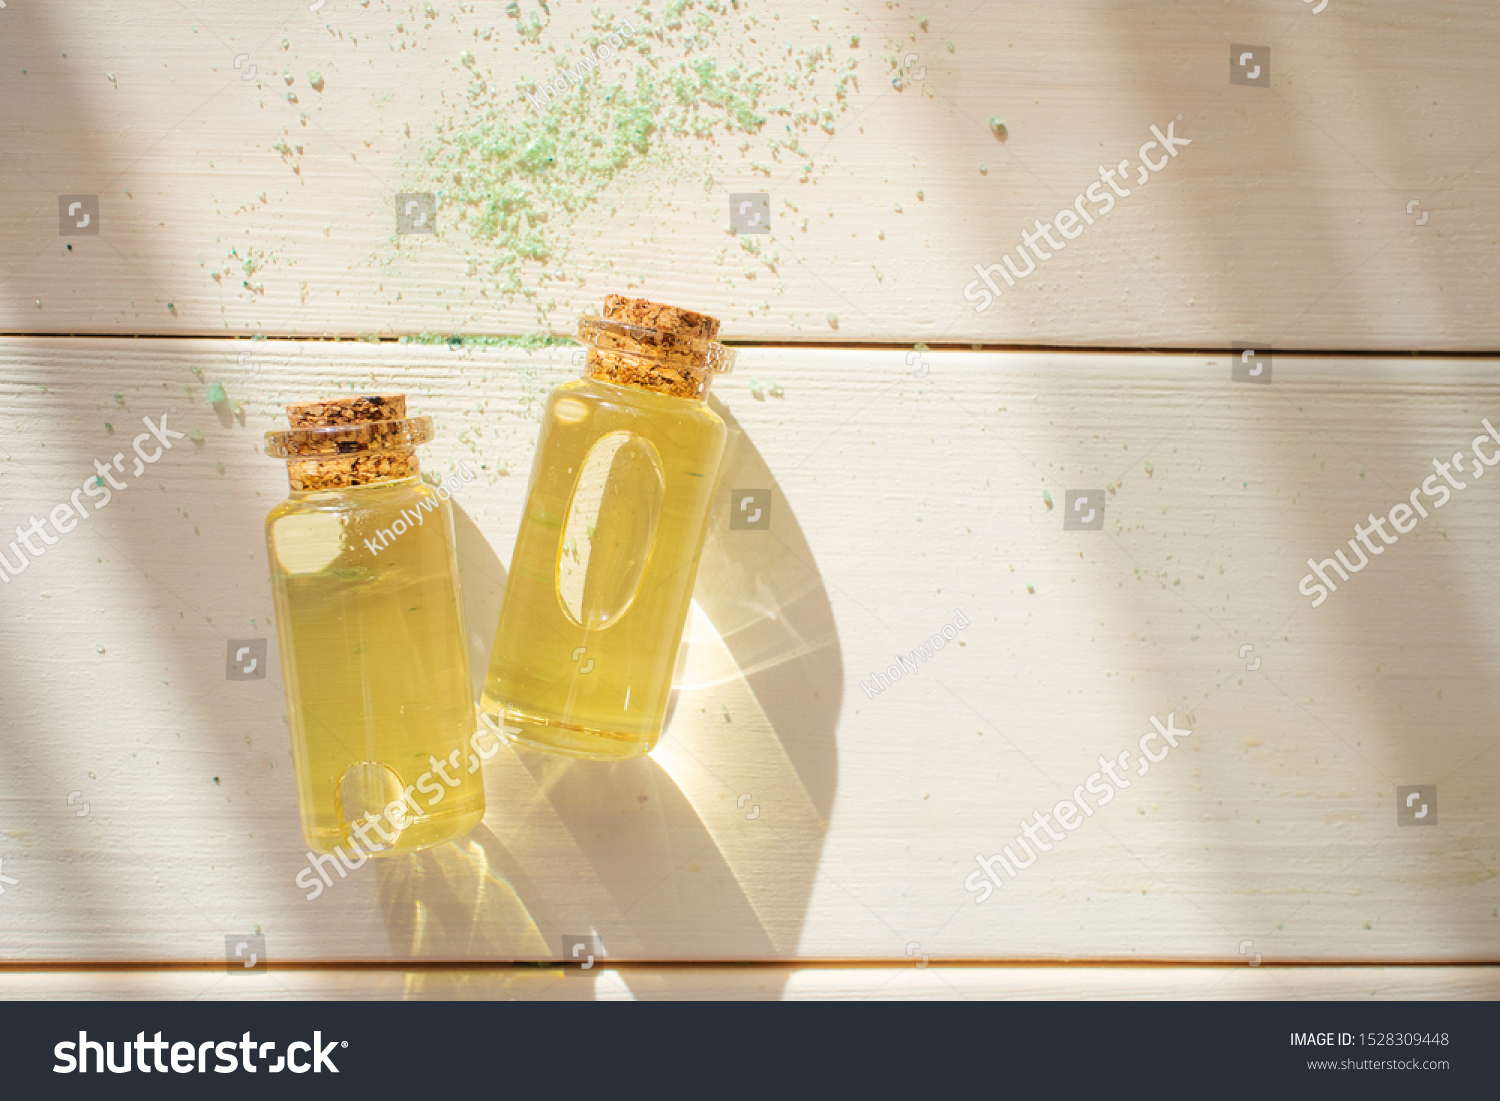 The concept of aromatherapy, relaxation, organics. Transparent bottles with essential oil on a light wooden background. Organic apothecary. Place for text. Minimalism, bright sunlight. #1528309448